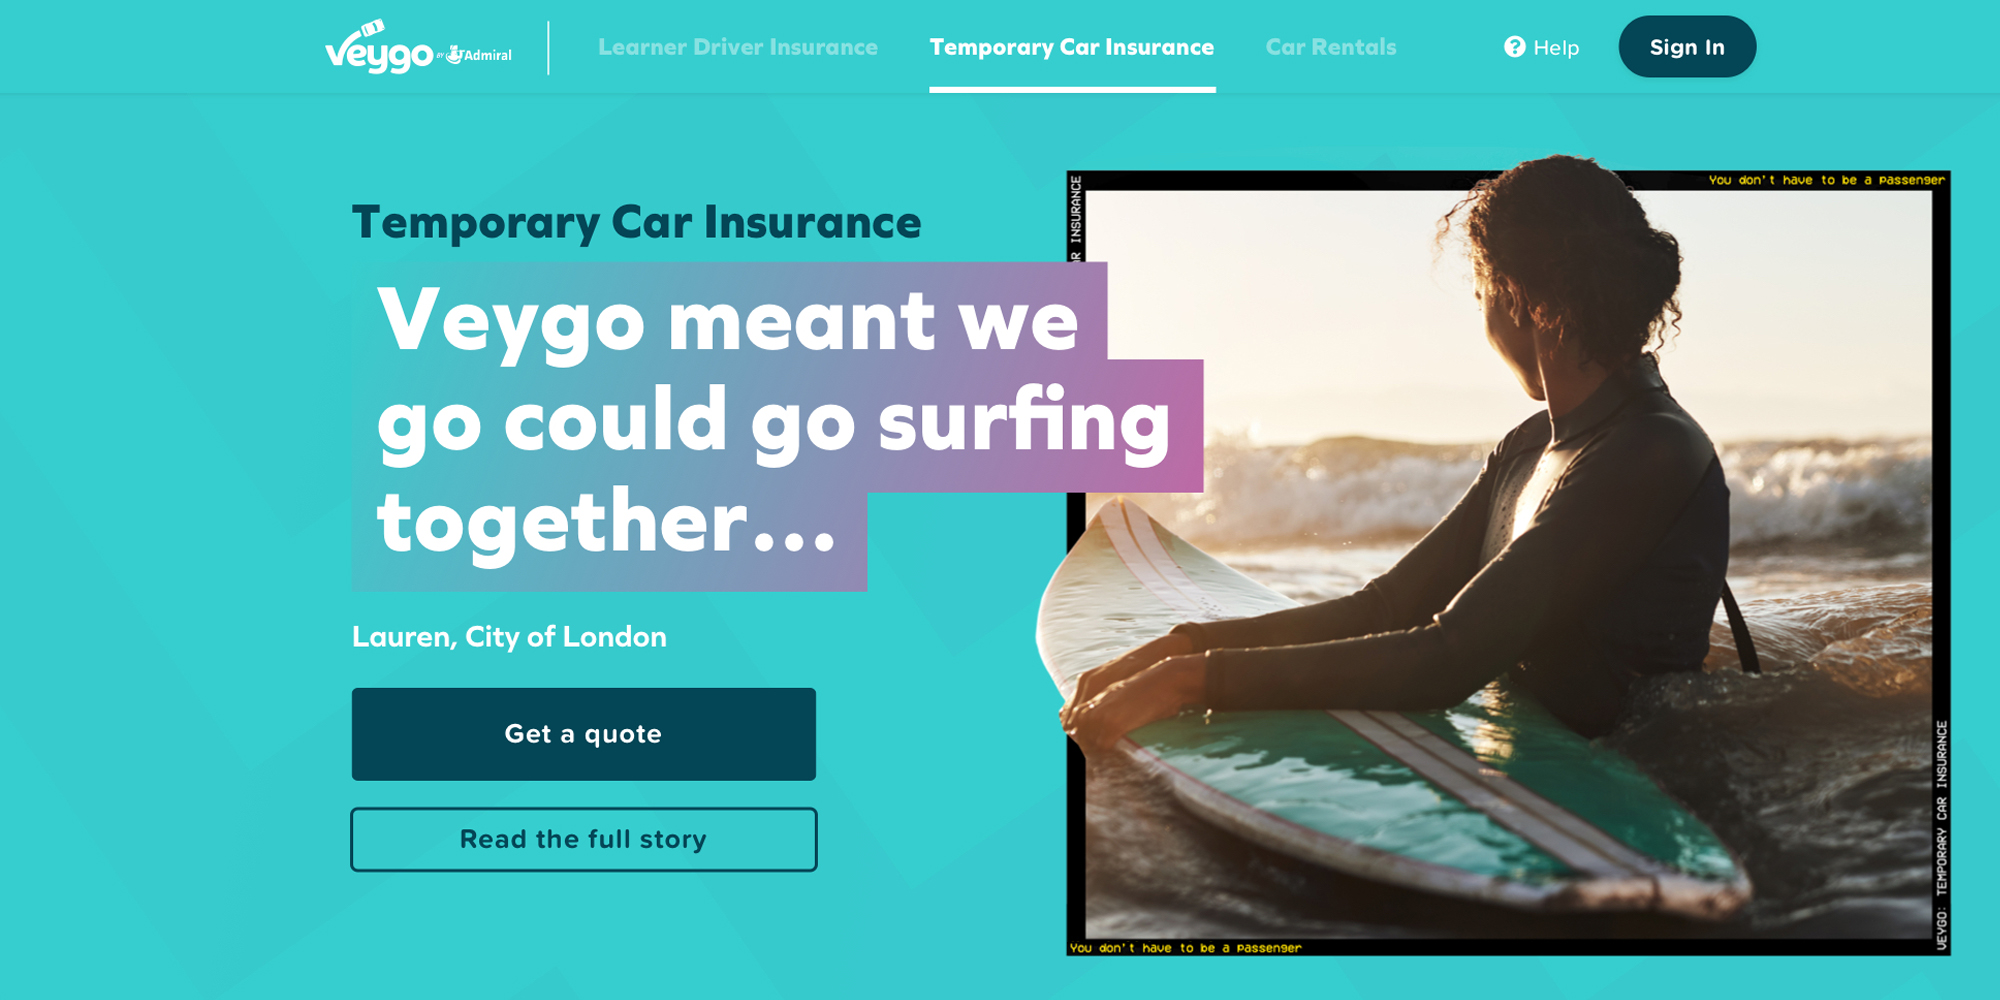 The Veygo website